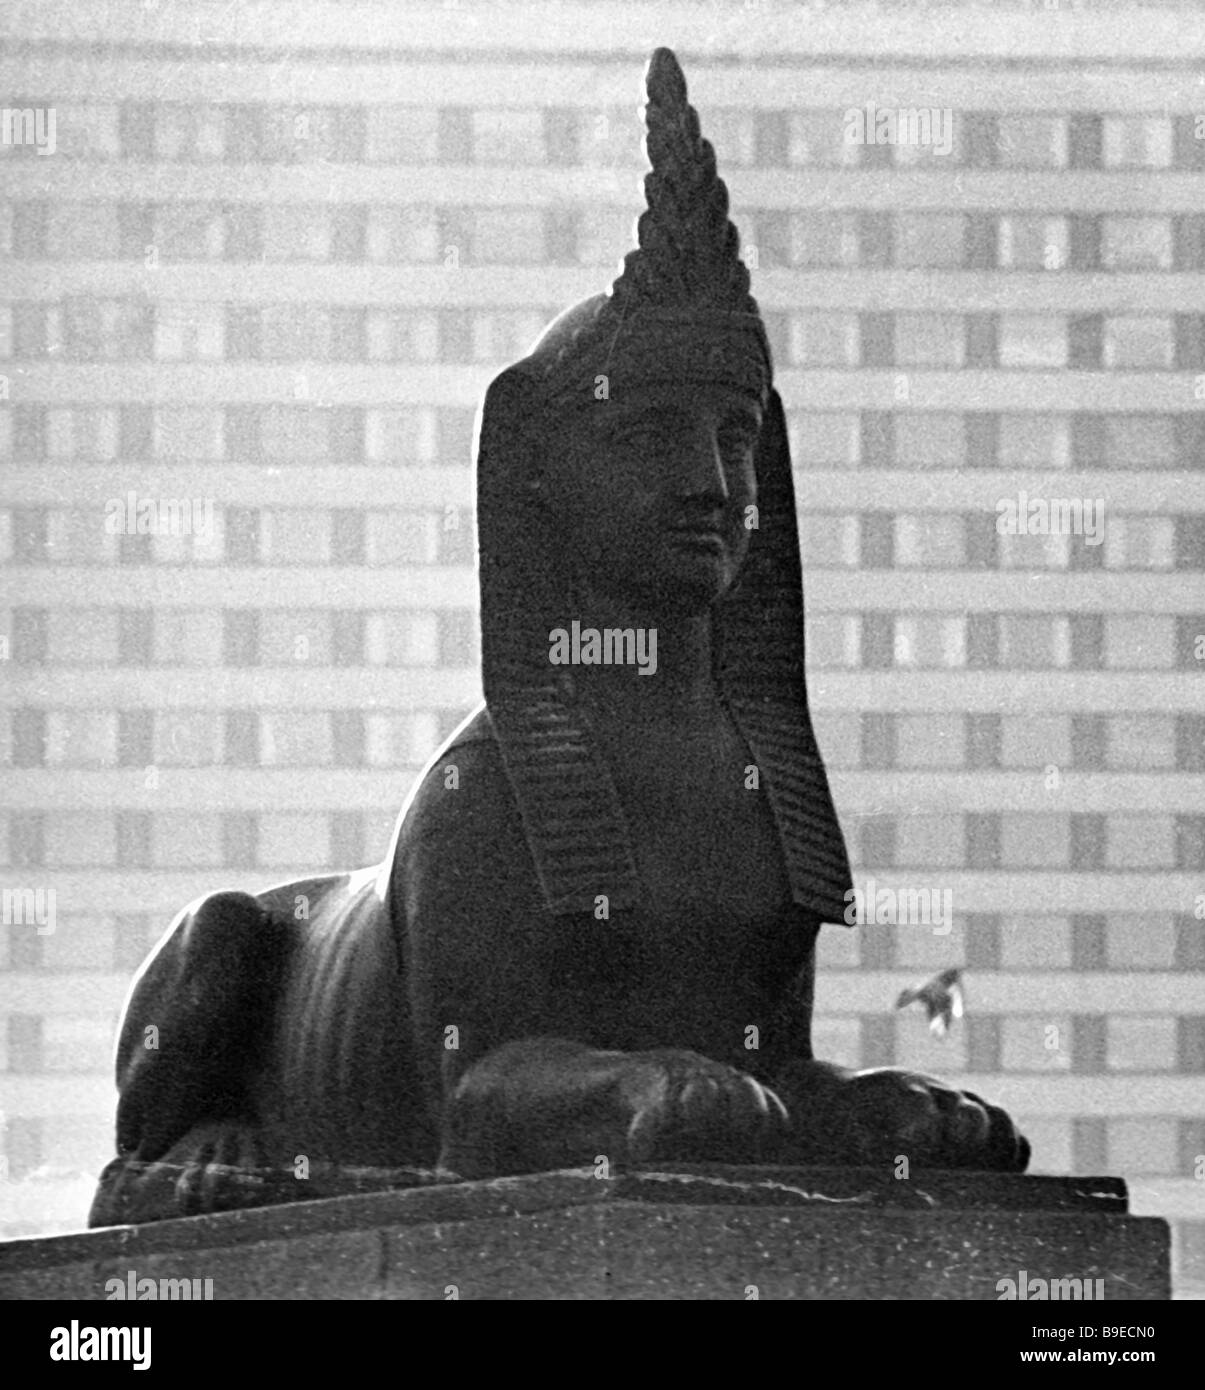 Sphinx at the Arts Academy building - Stock Image